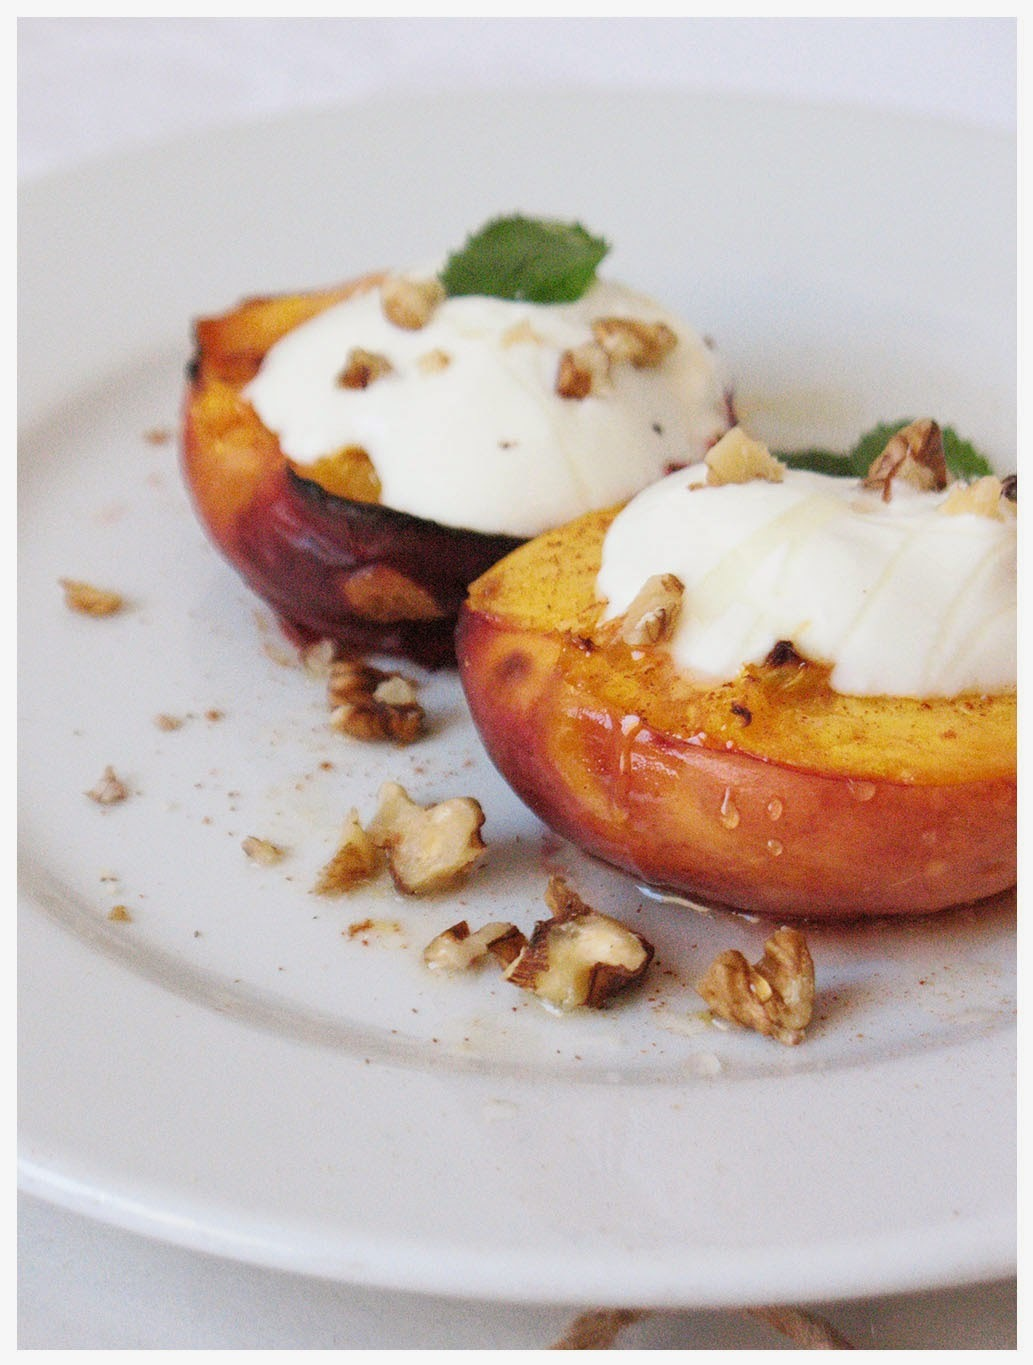 Pečene breskve s grčkim jogurtom/ Baked peaches with greek yogurt